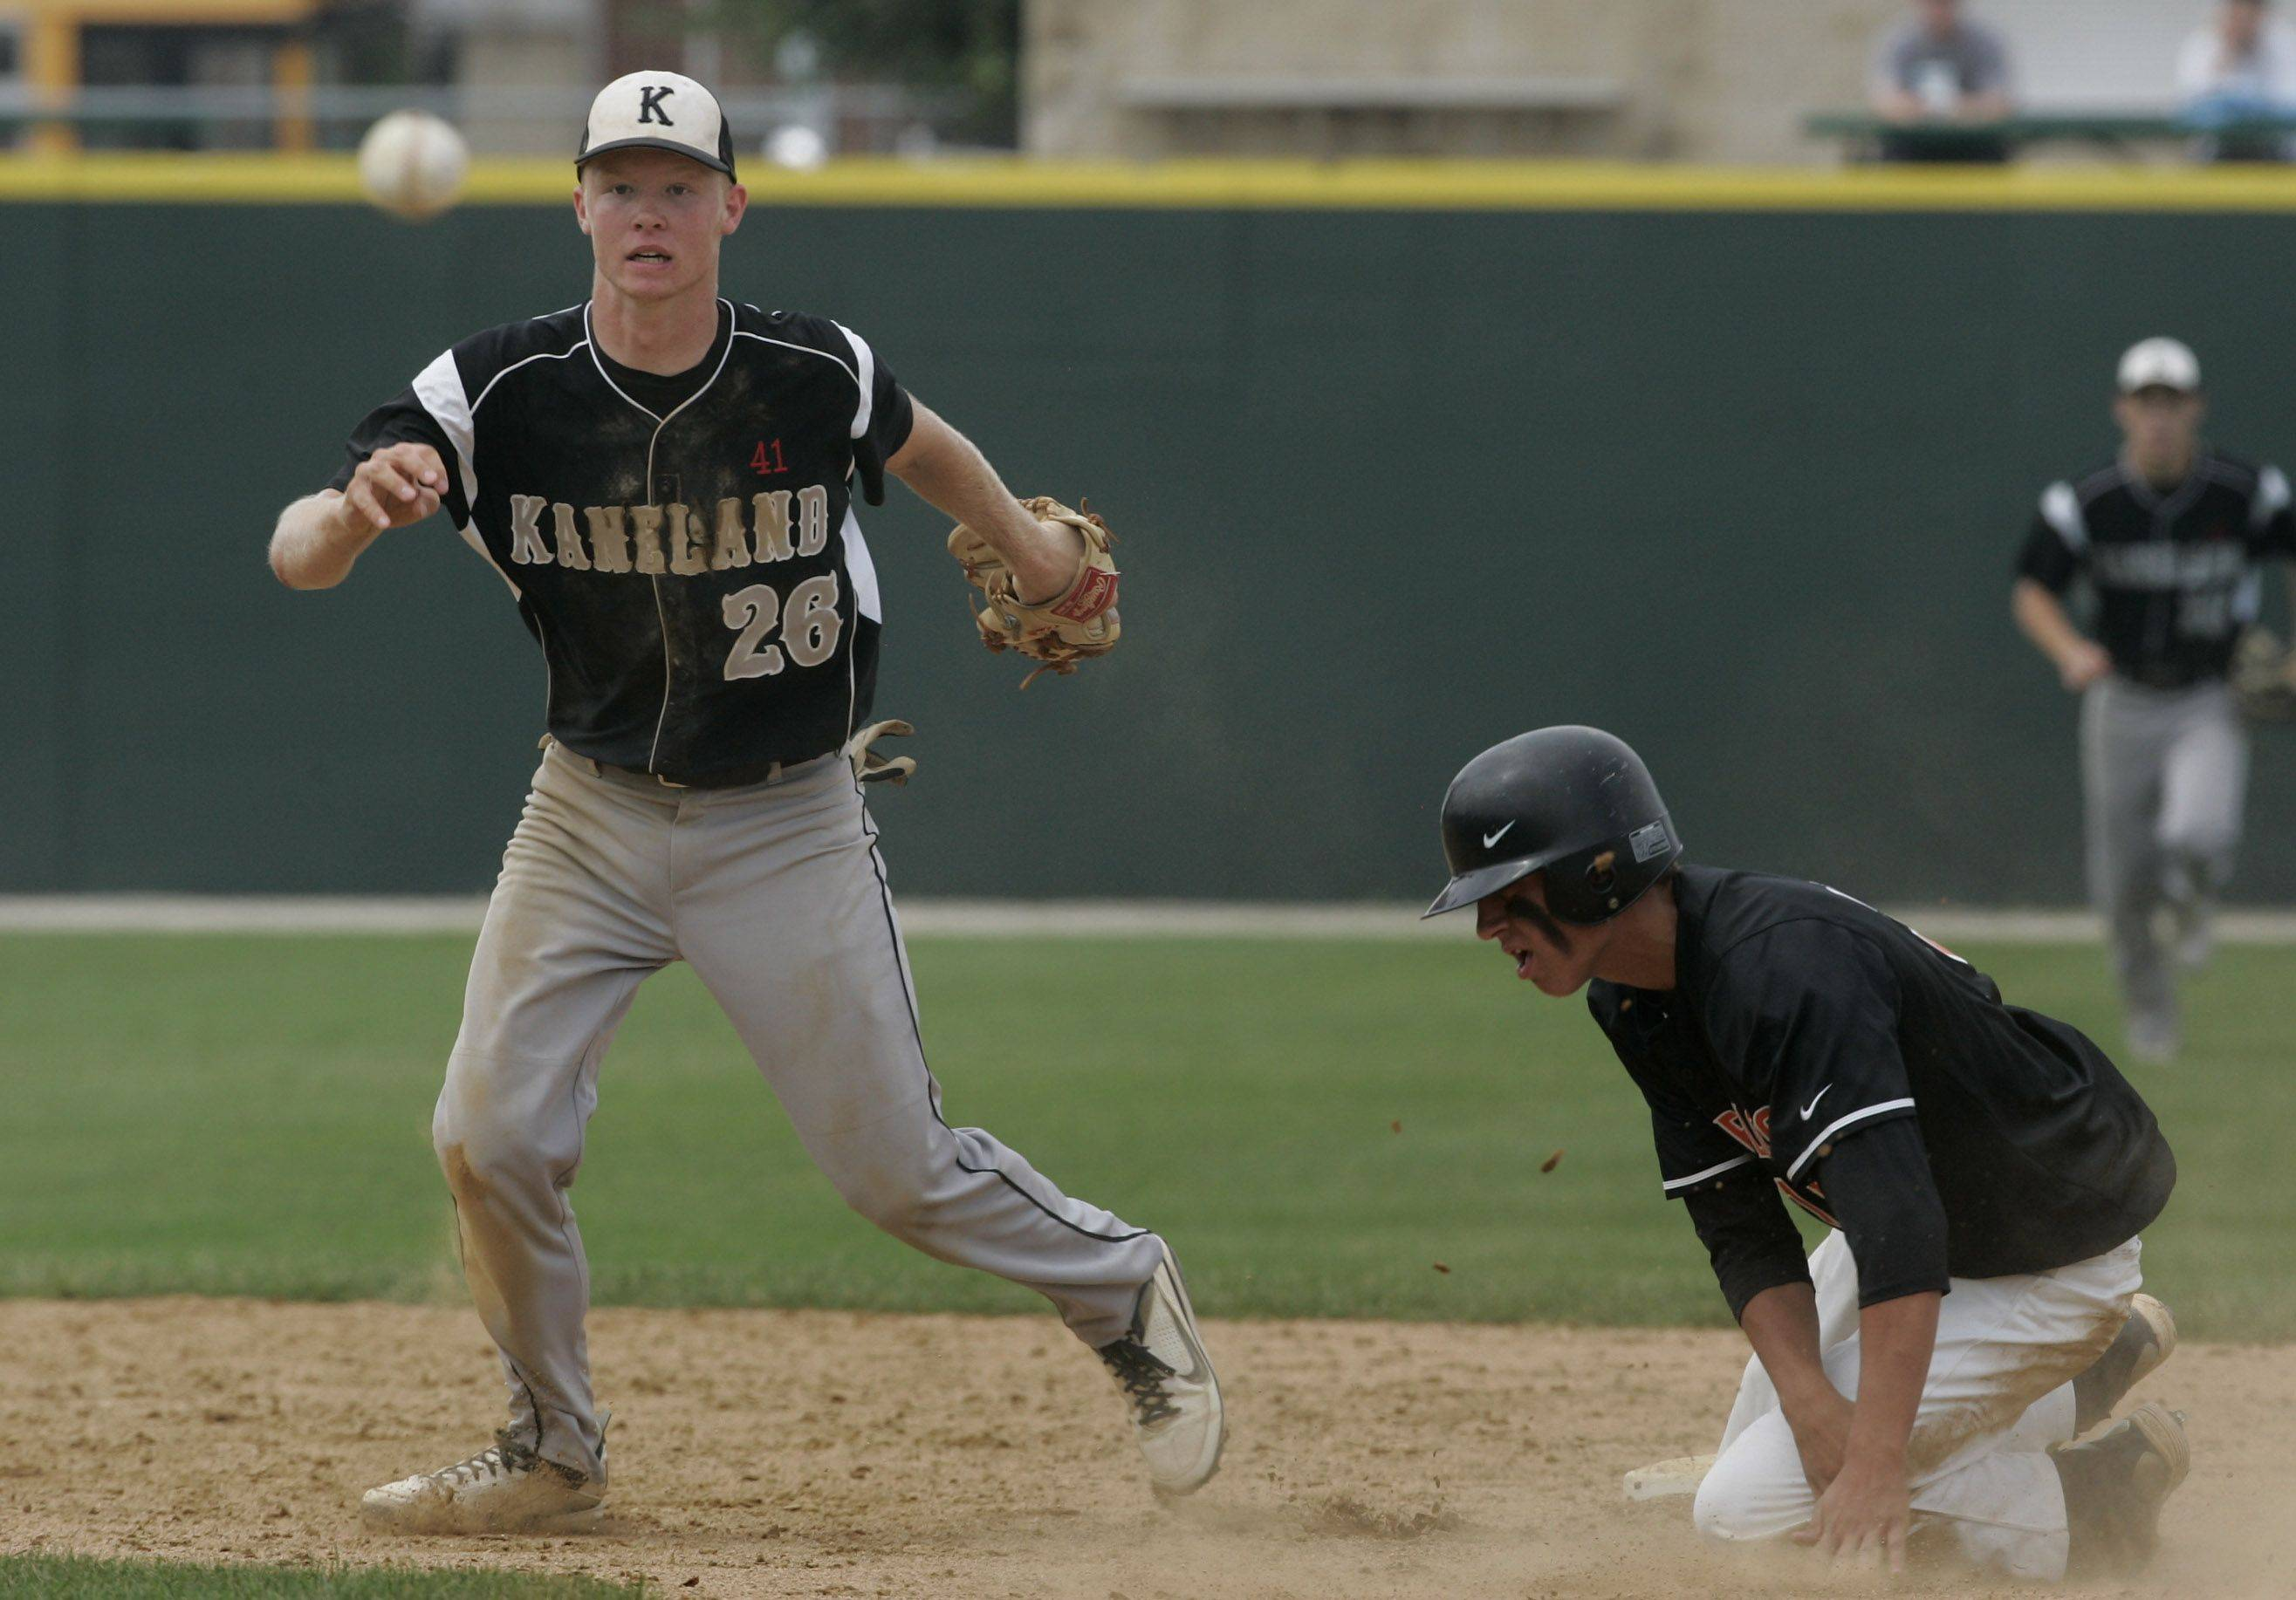 Kaneland's Kyle Davidson makes a double play as he gets the out at second base against Waterloo runner Eli Snodgrass.